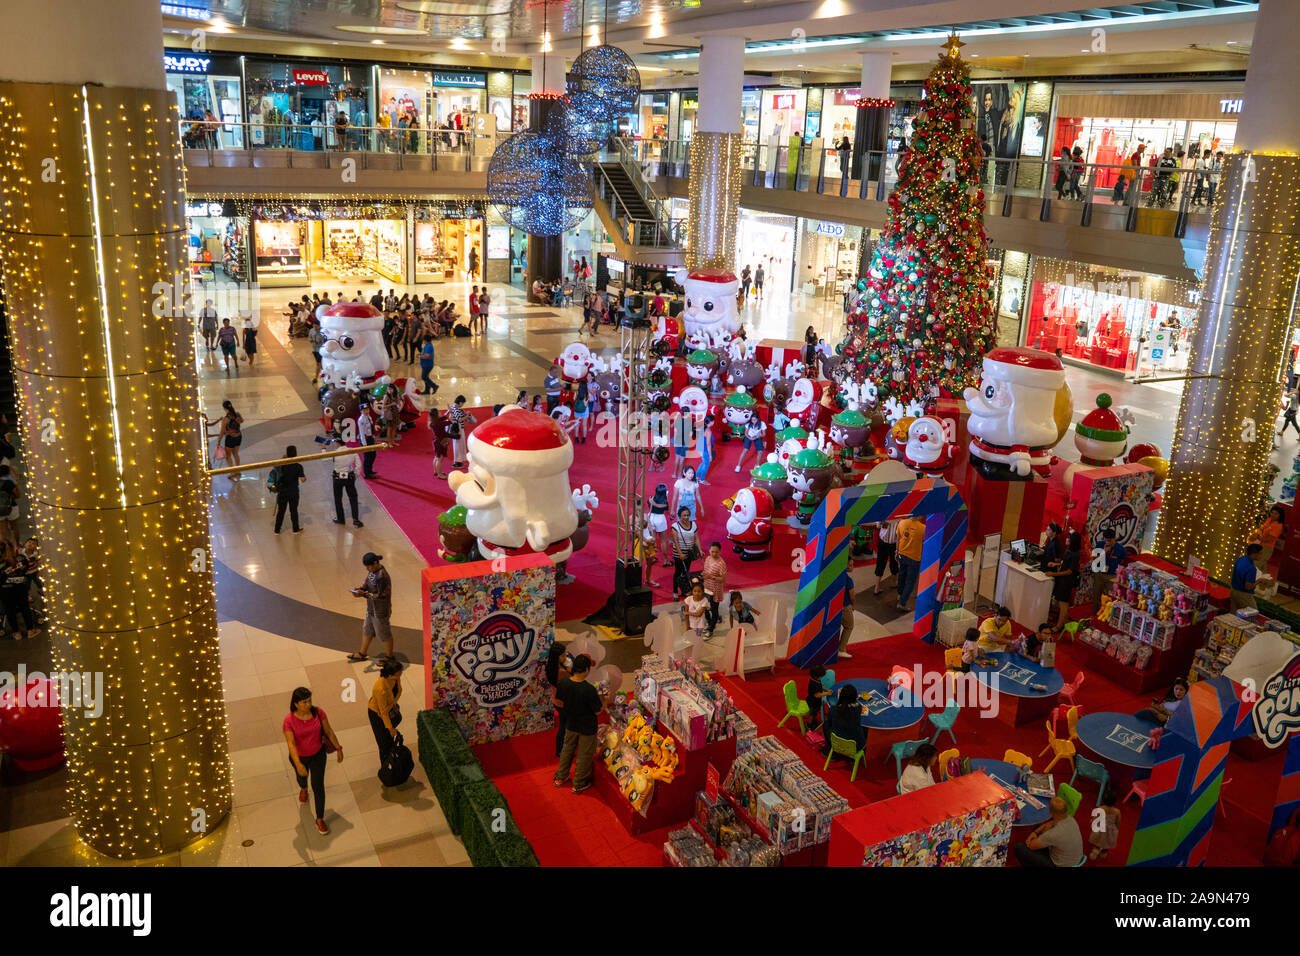 Philippines Christmas High Resolution Stock Photography and Images